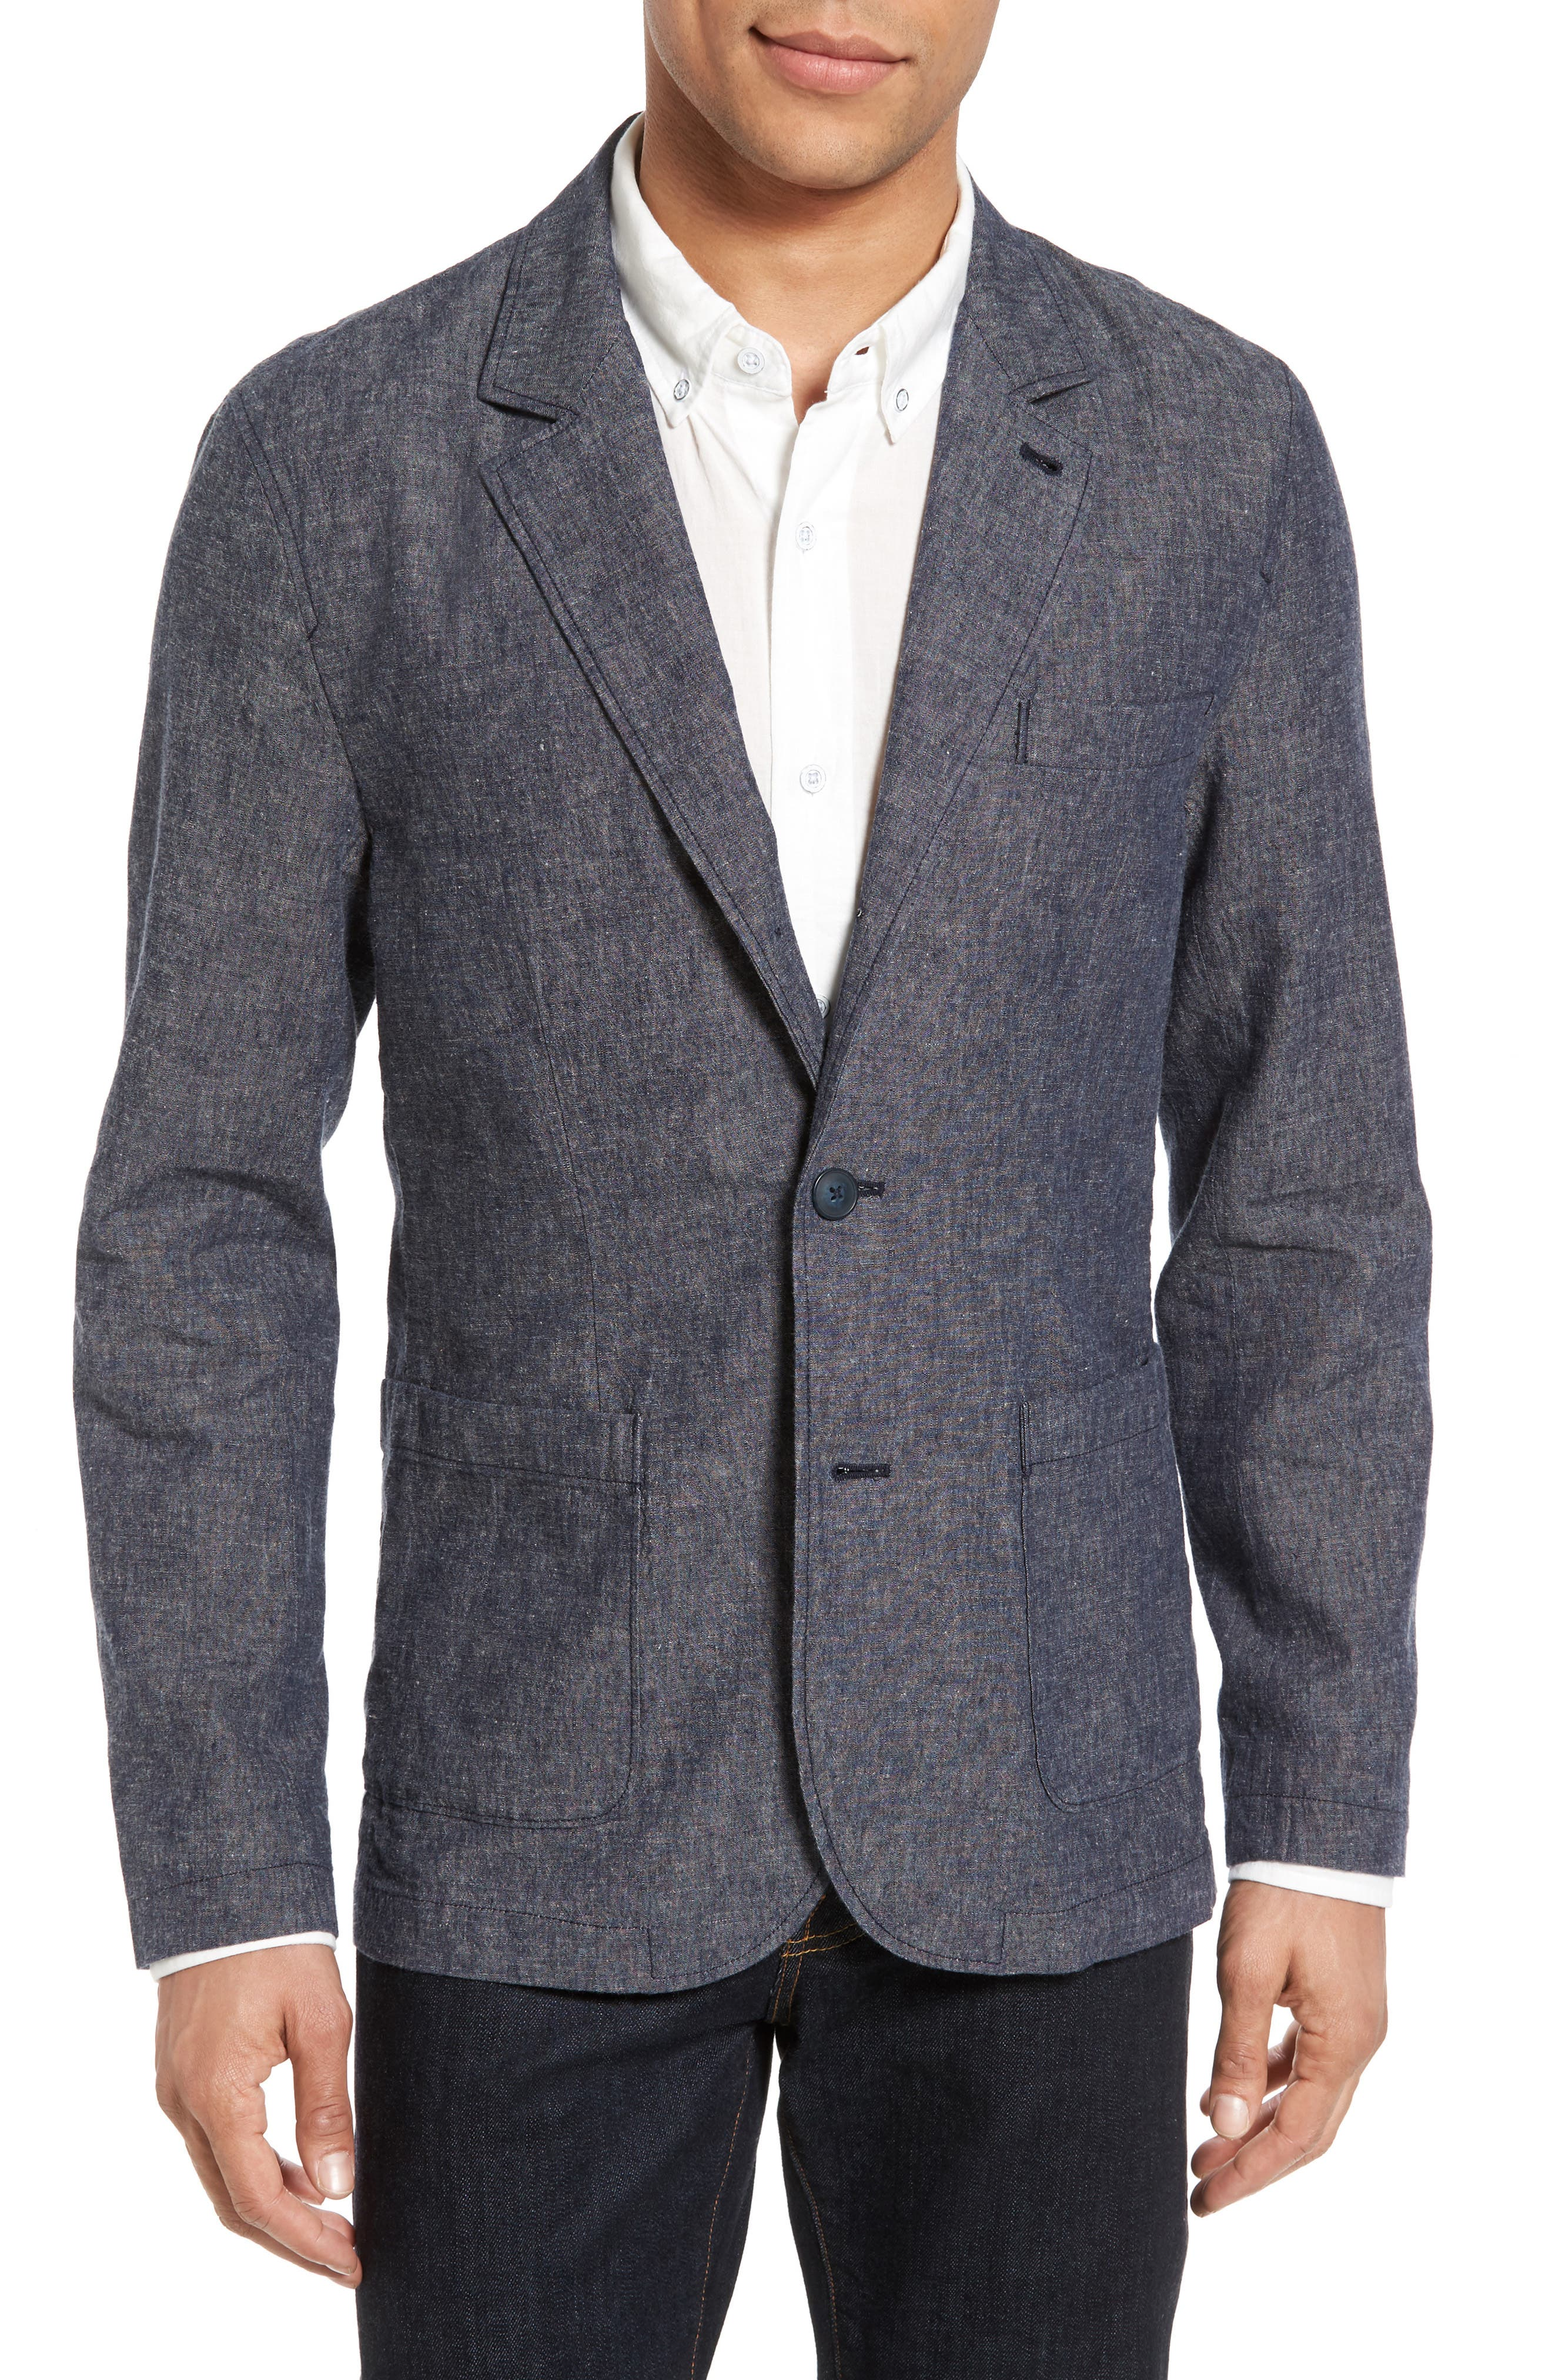 Trunnel Slim Fit Linen Blend Blazer,                         Main,                         color, 485